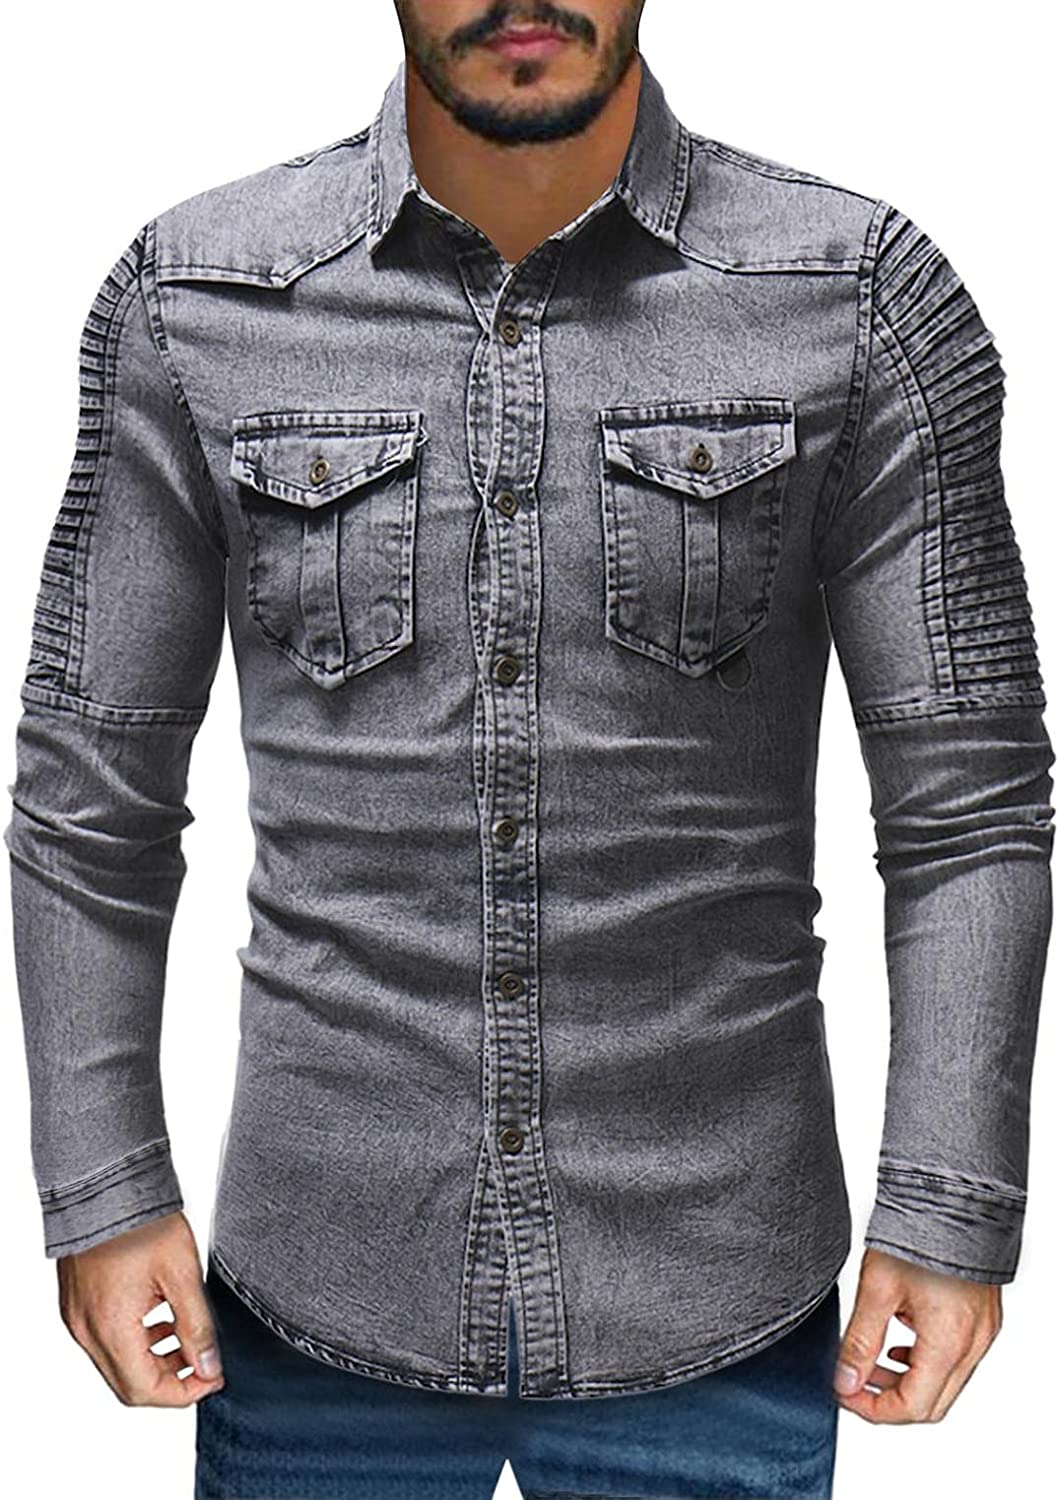 FUNEY Button Up Shirt Men Long Sleeve Washed Fall Winter Fashion Vintage Pleated Collared Basic Two-Pocket Denim Shirts